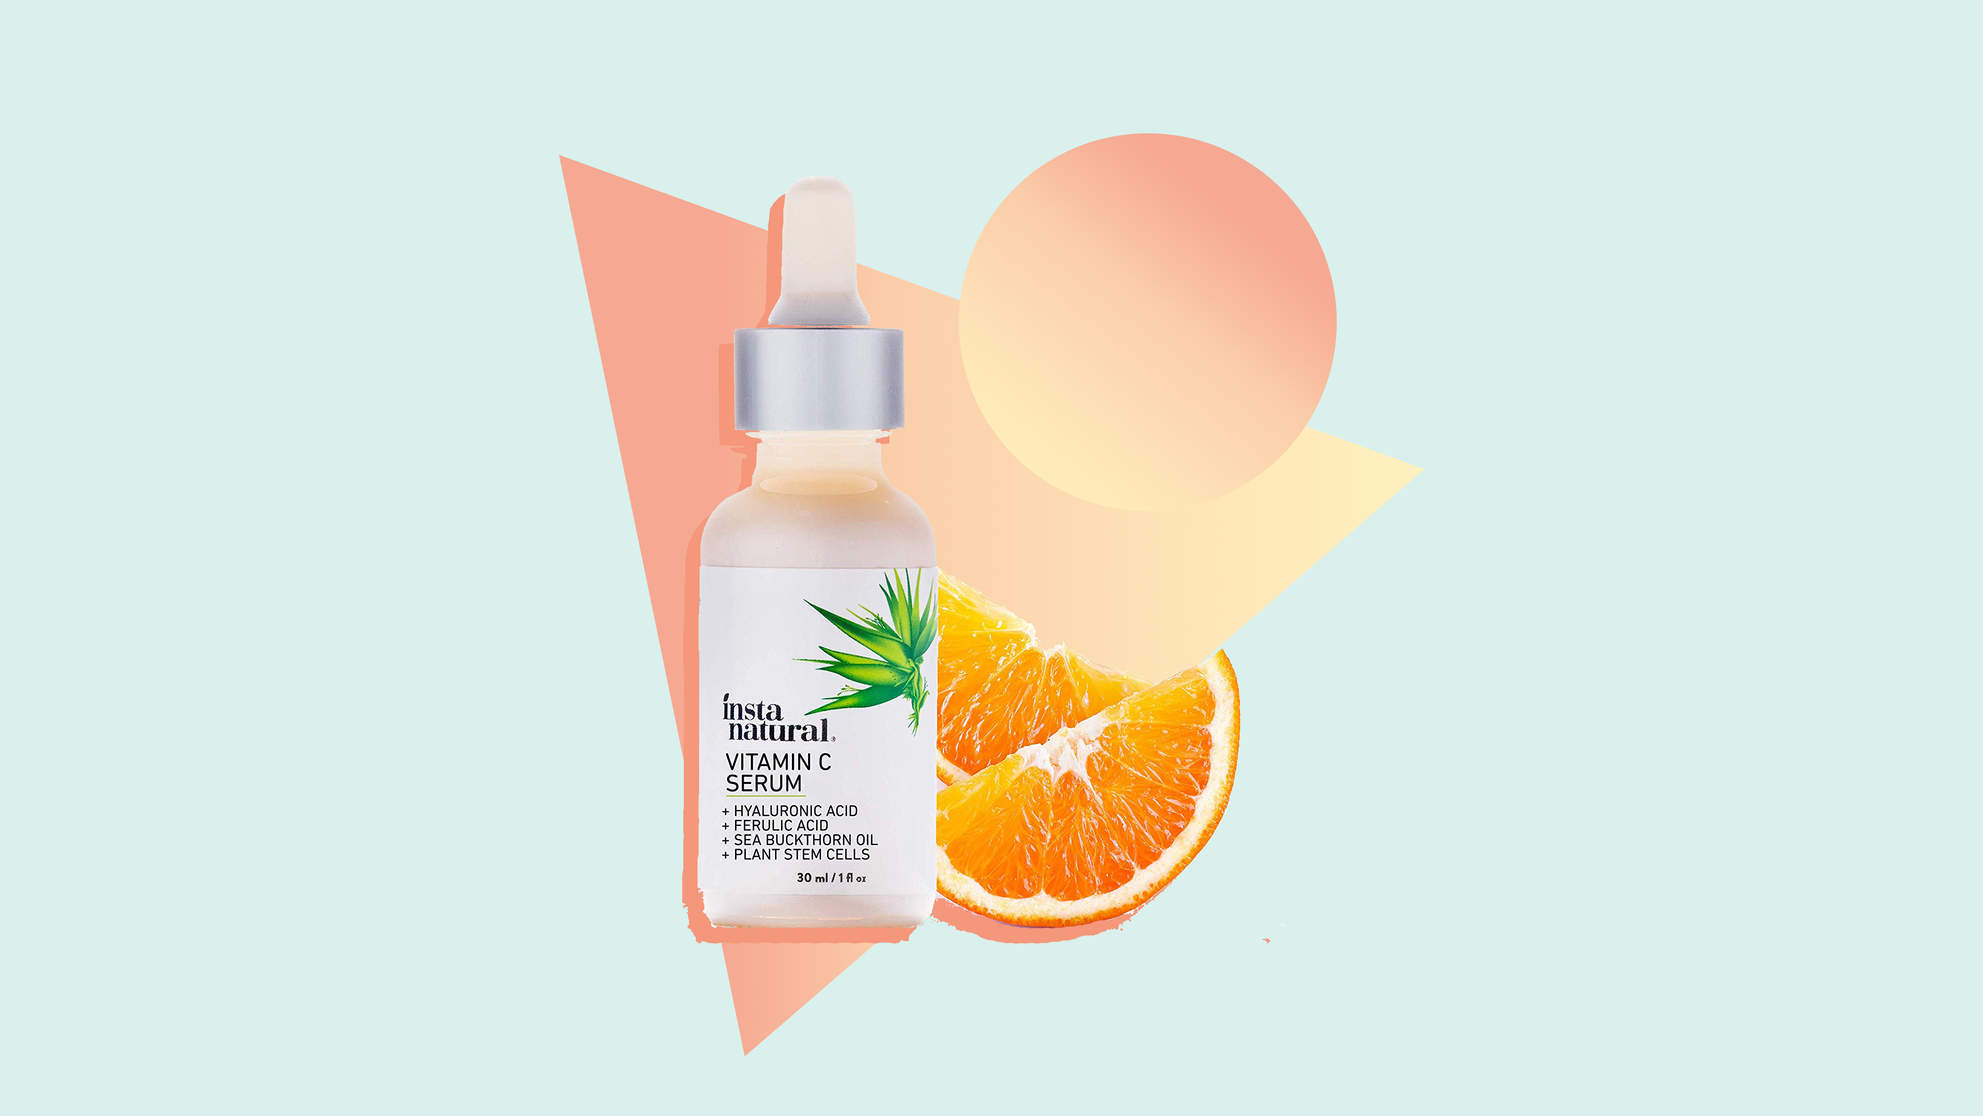 This Vitamin C Serum With 5,000 Near-Perfect Reviews Sells Every 4 Minutes on Amazon—and It'll Transform Your Skin